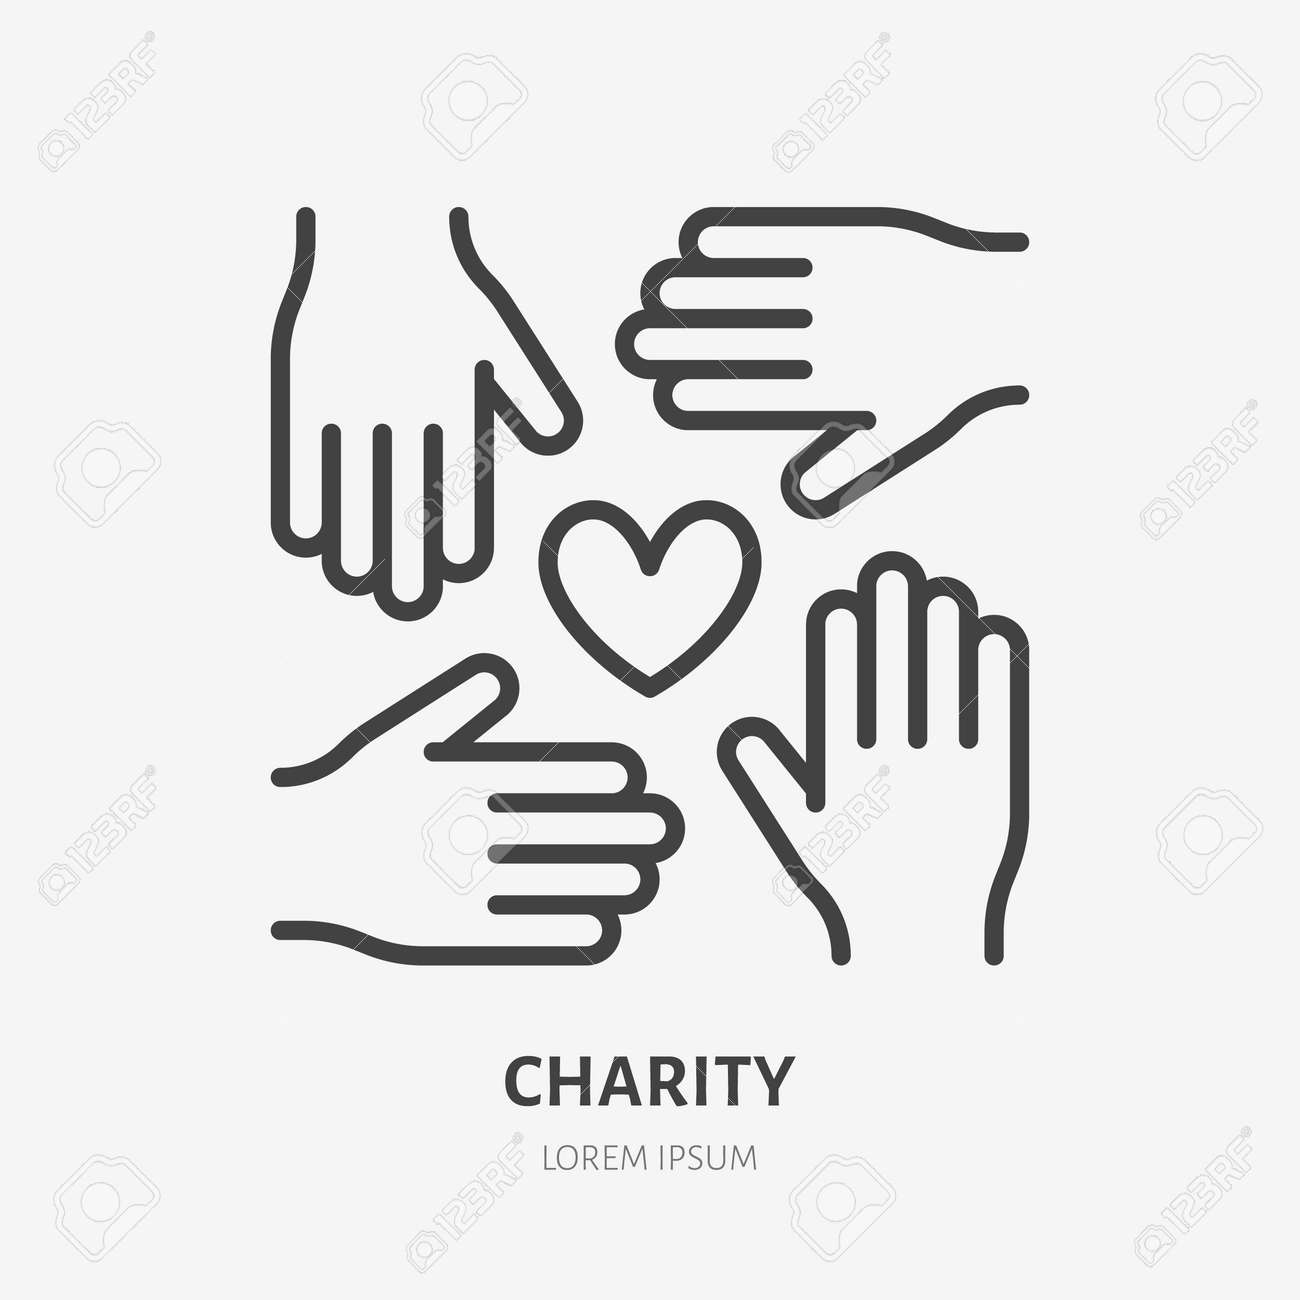 Volunteer organization flat line icon. Vector outline illustration of hands and heart. Black color thin linear sign for charity unity. - 160599955